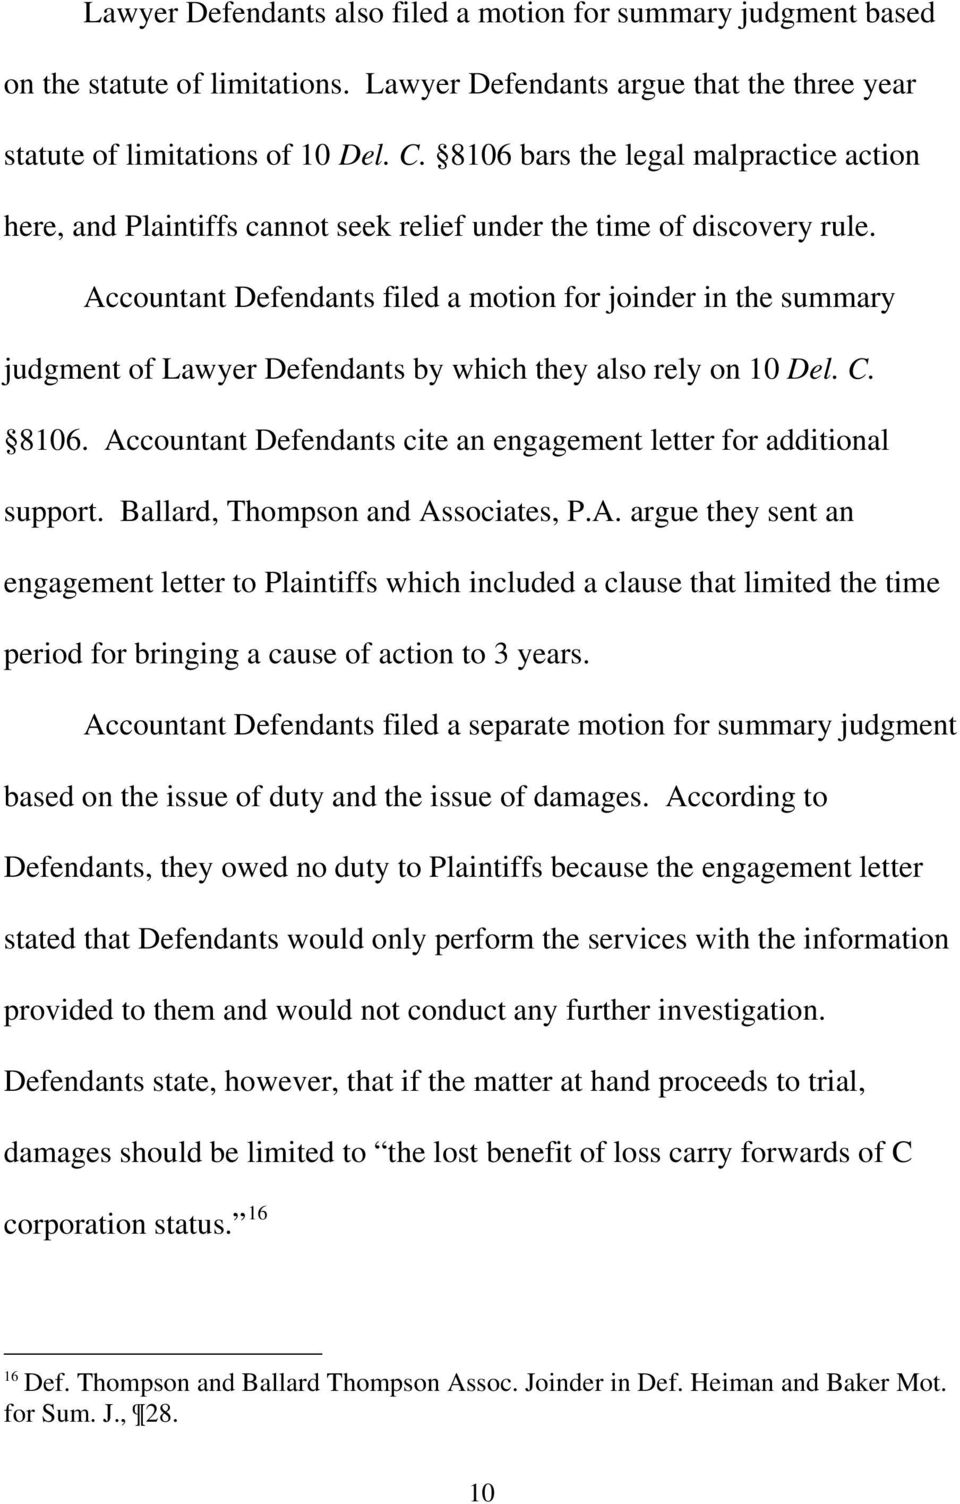 Accountant Defendants filed a motion for joinder in the summary judgment of Lawyer Defendants by which they also rely on 10 Del. C. 8106.